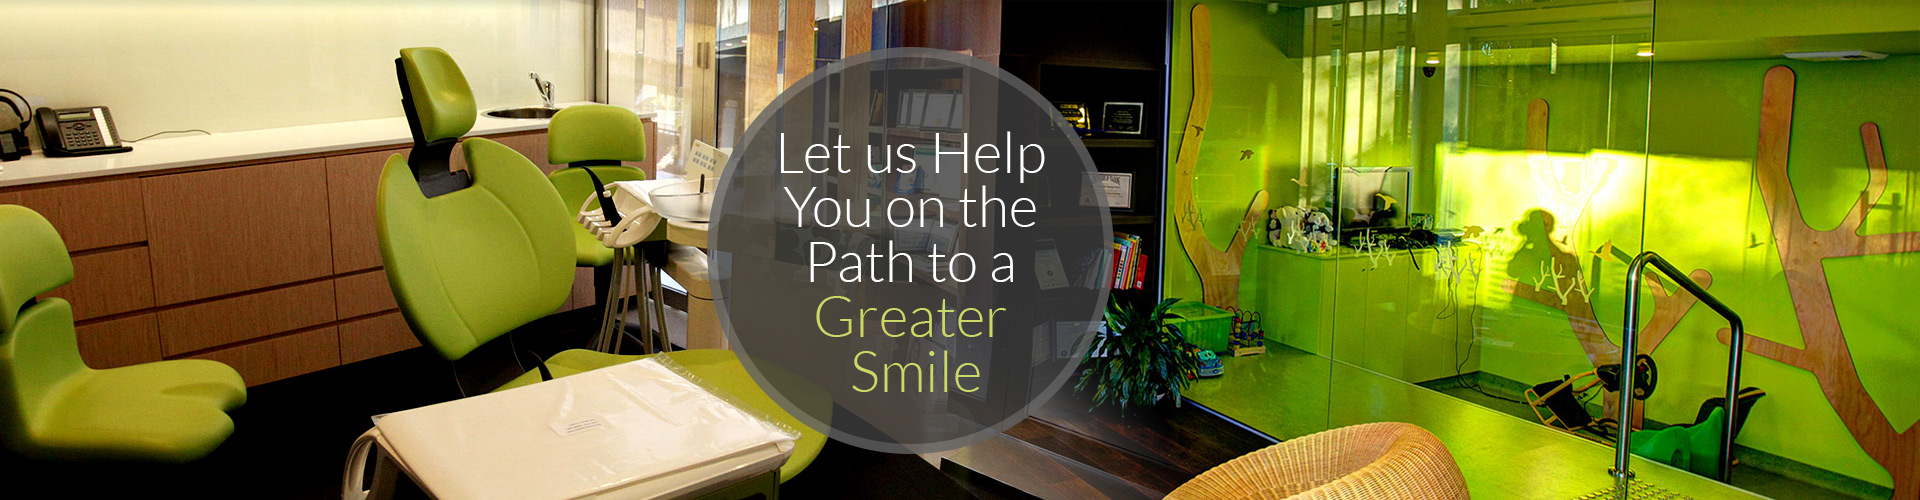 Let us help you on the path to a greater smile